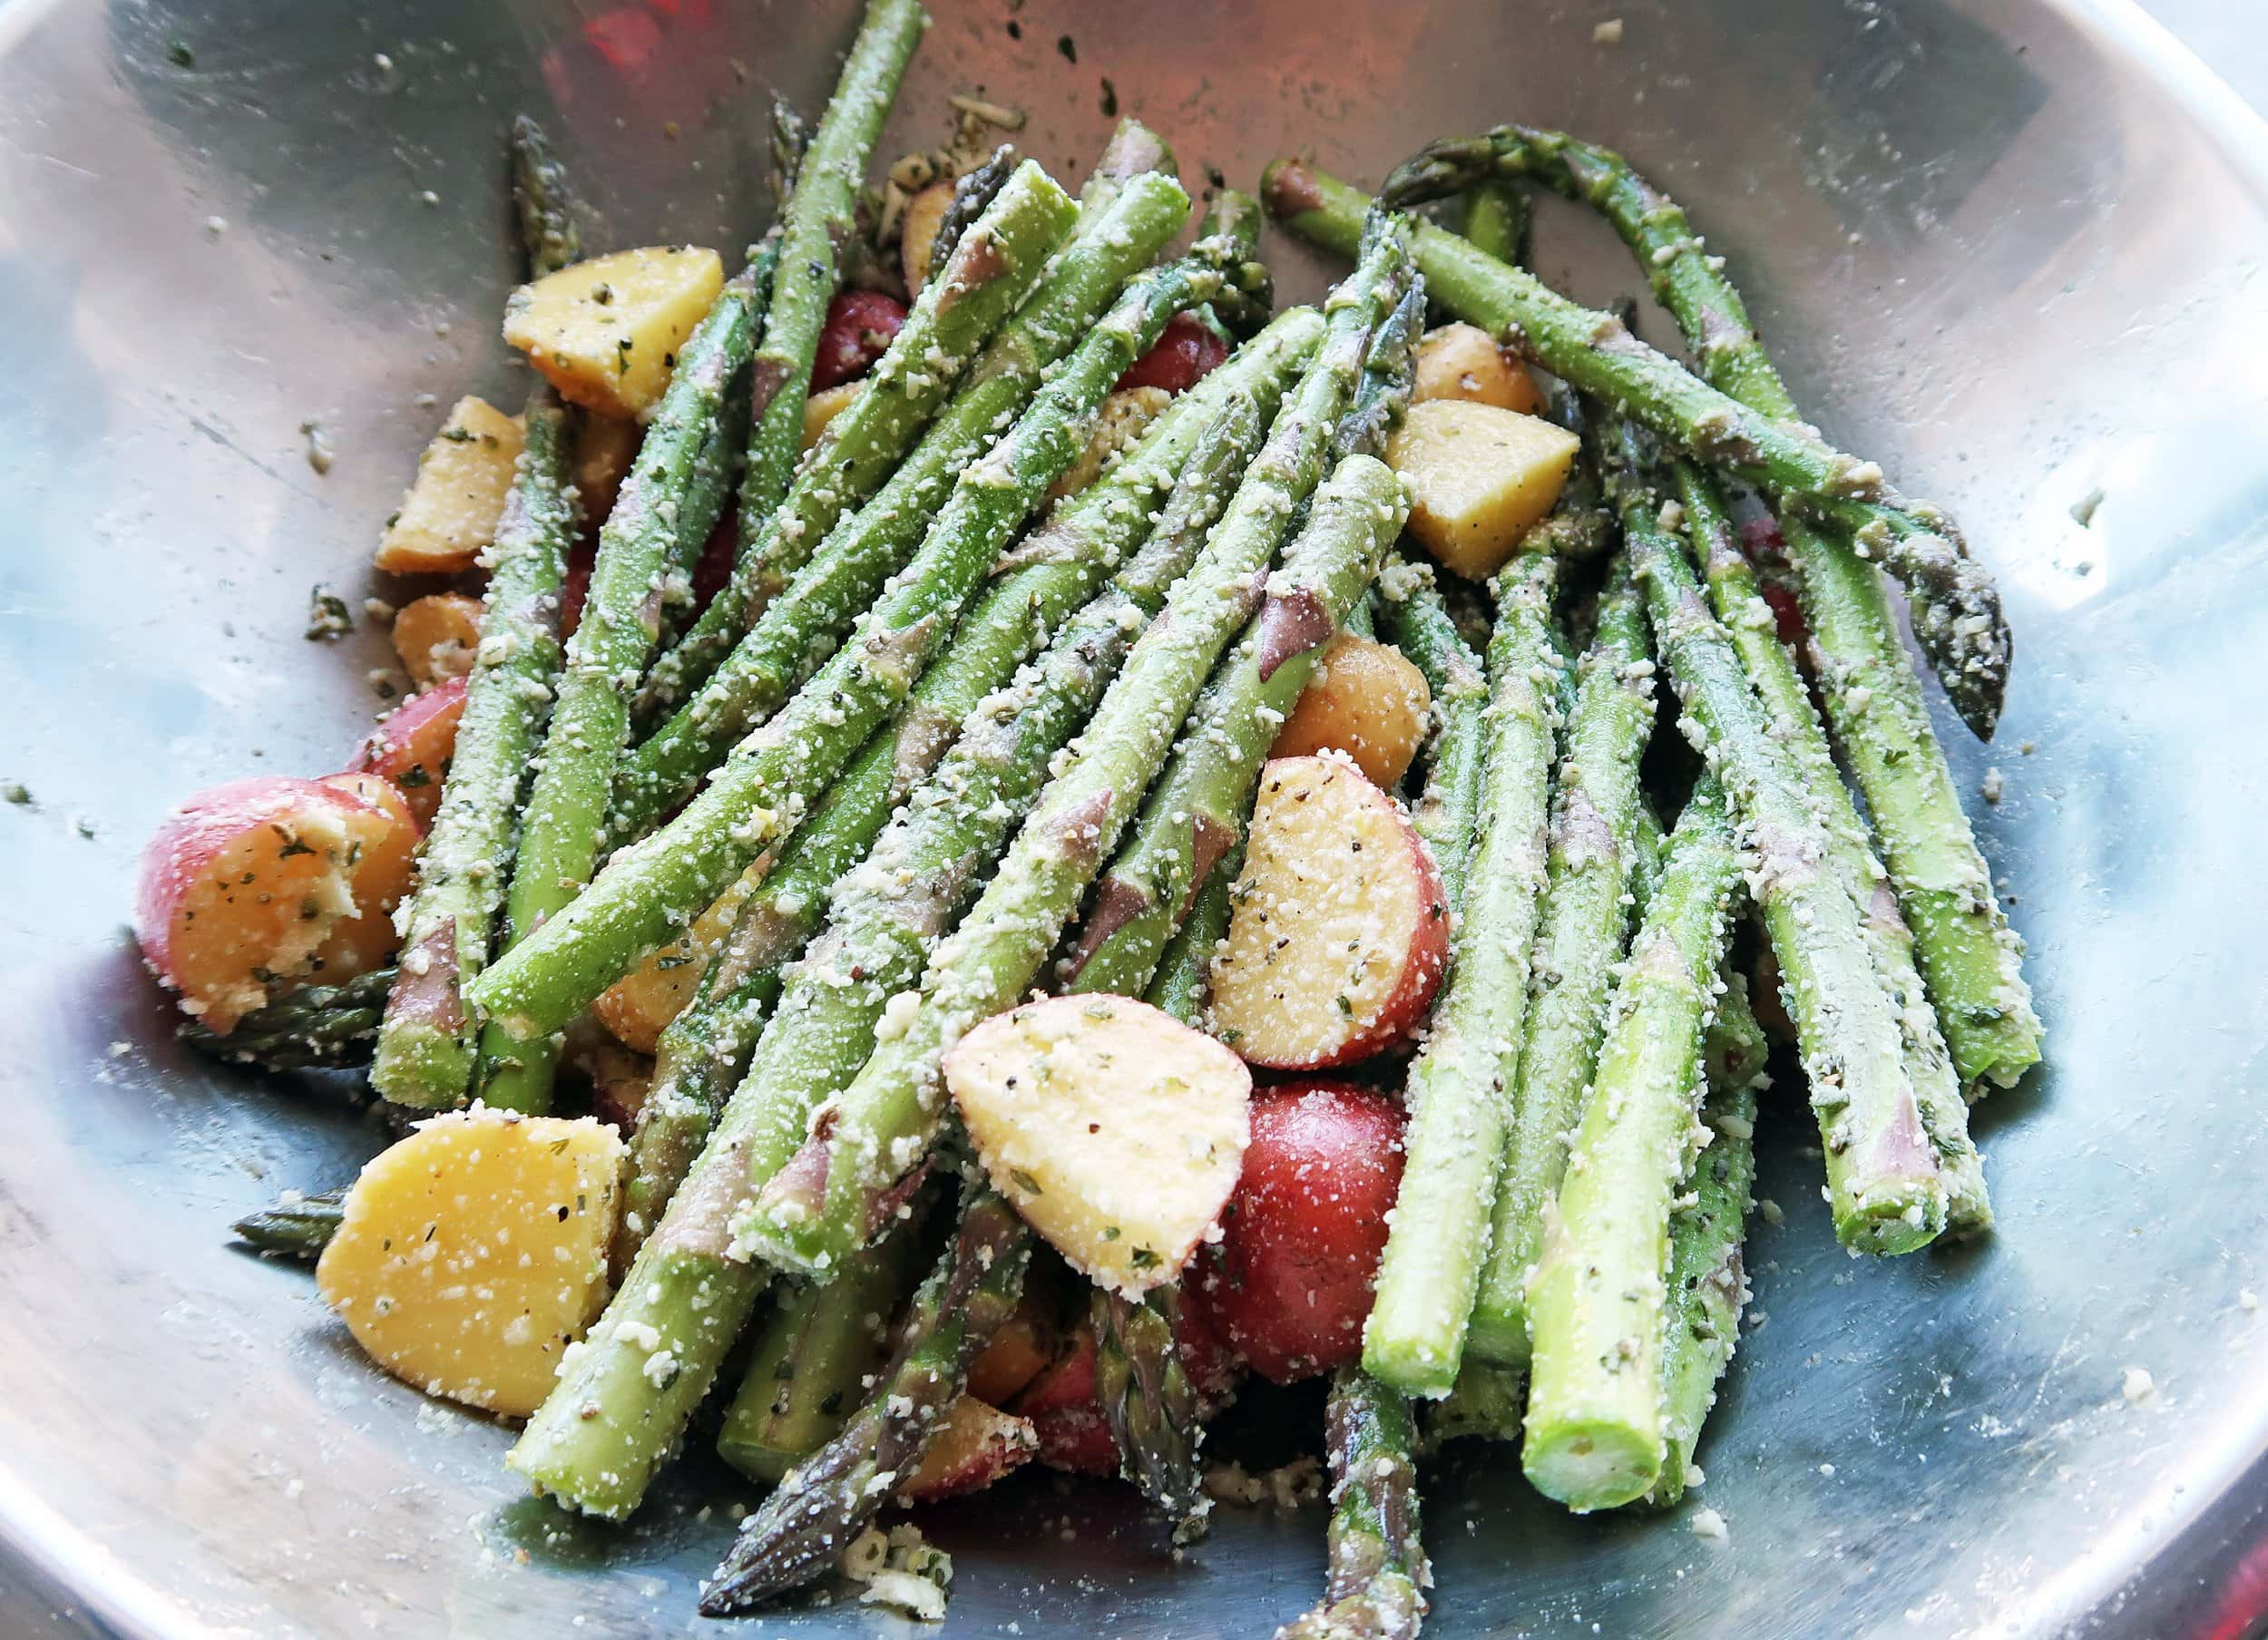 Potatoes and asparagus in a bowl.